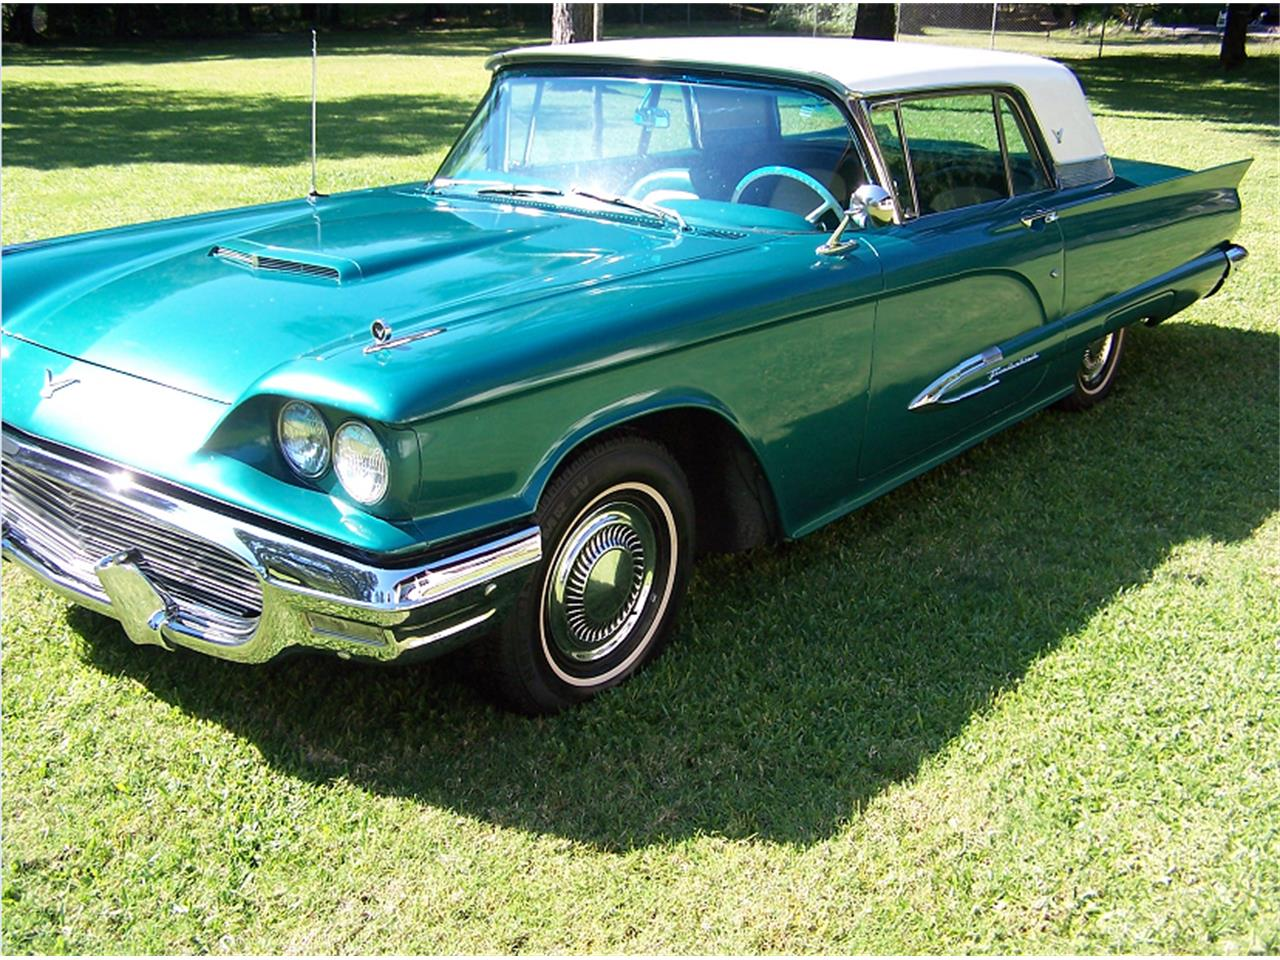 Large Picture of 1959 Ford Thunderbird - $15,500.00 - LLRY